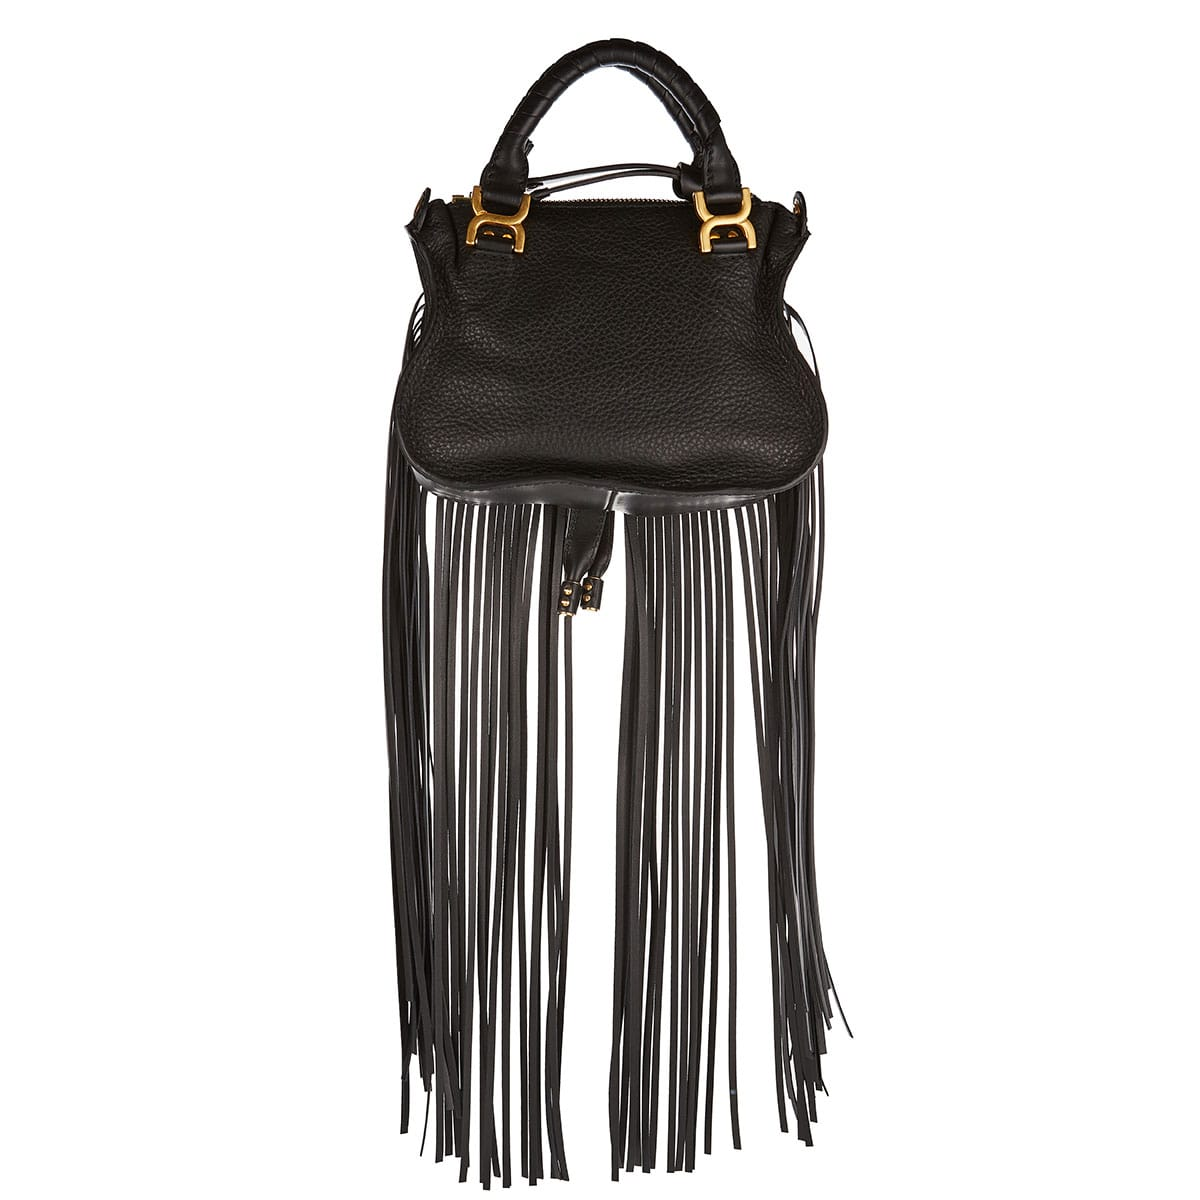 Marcie mini fringed leather bag